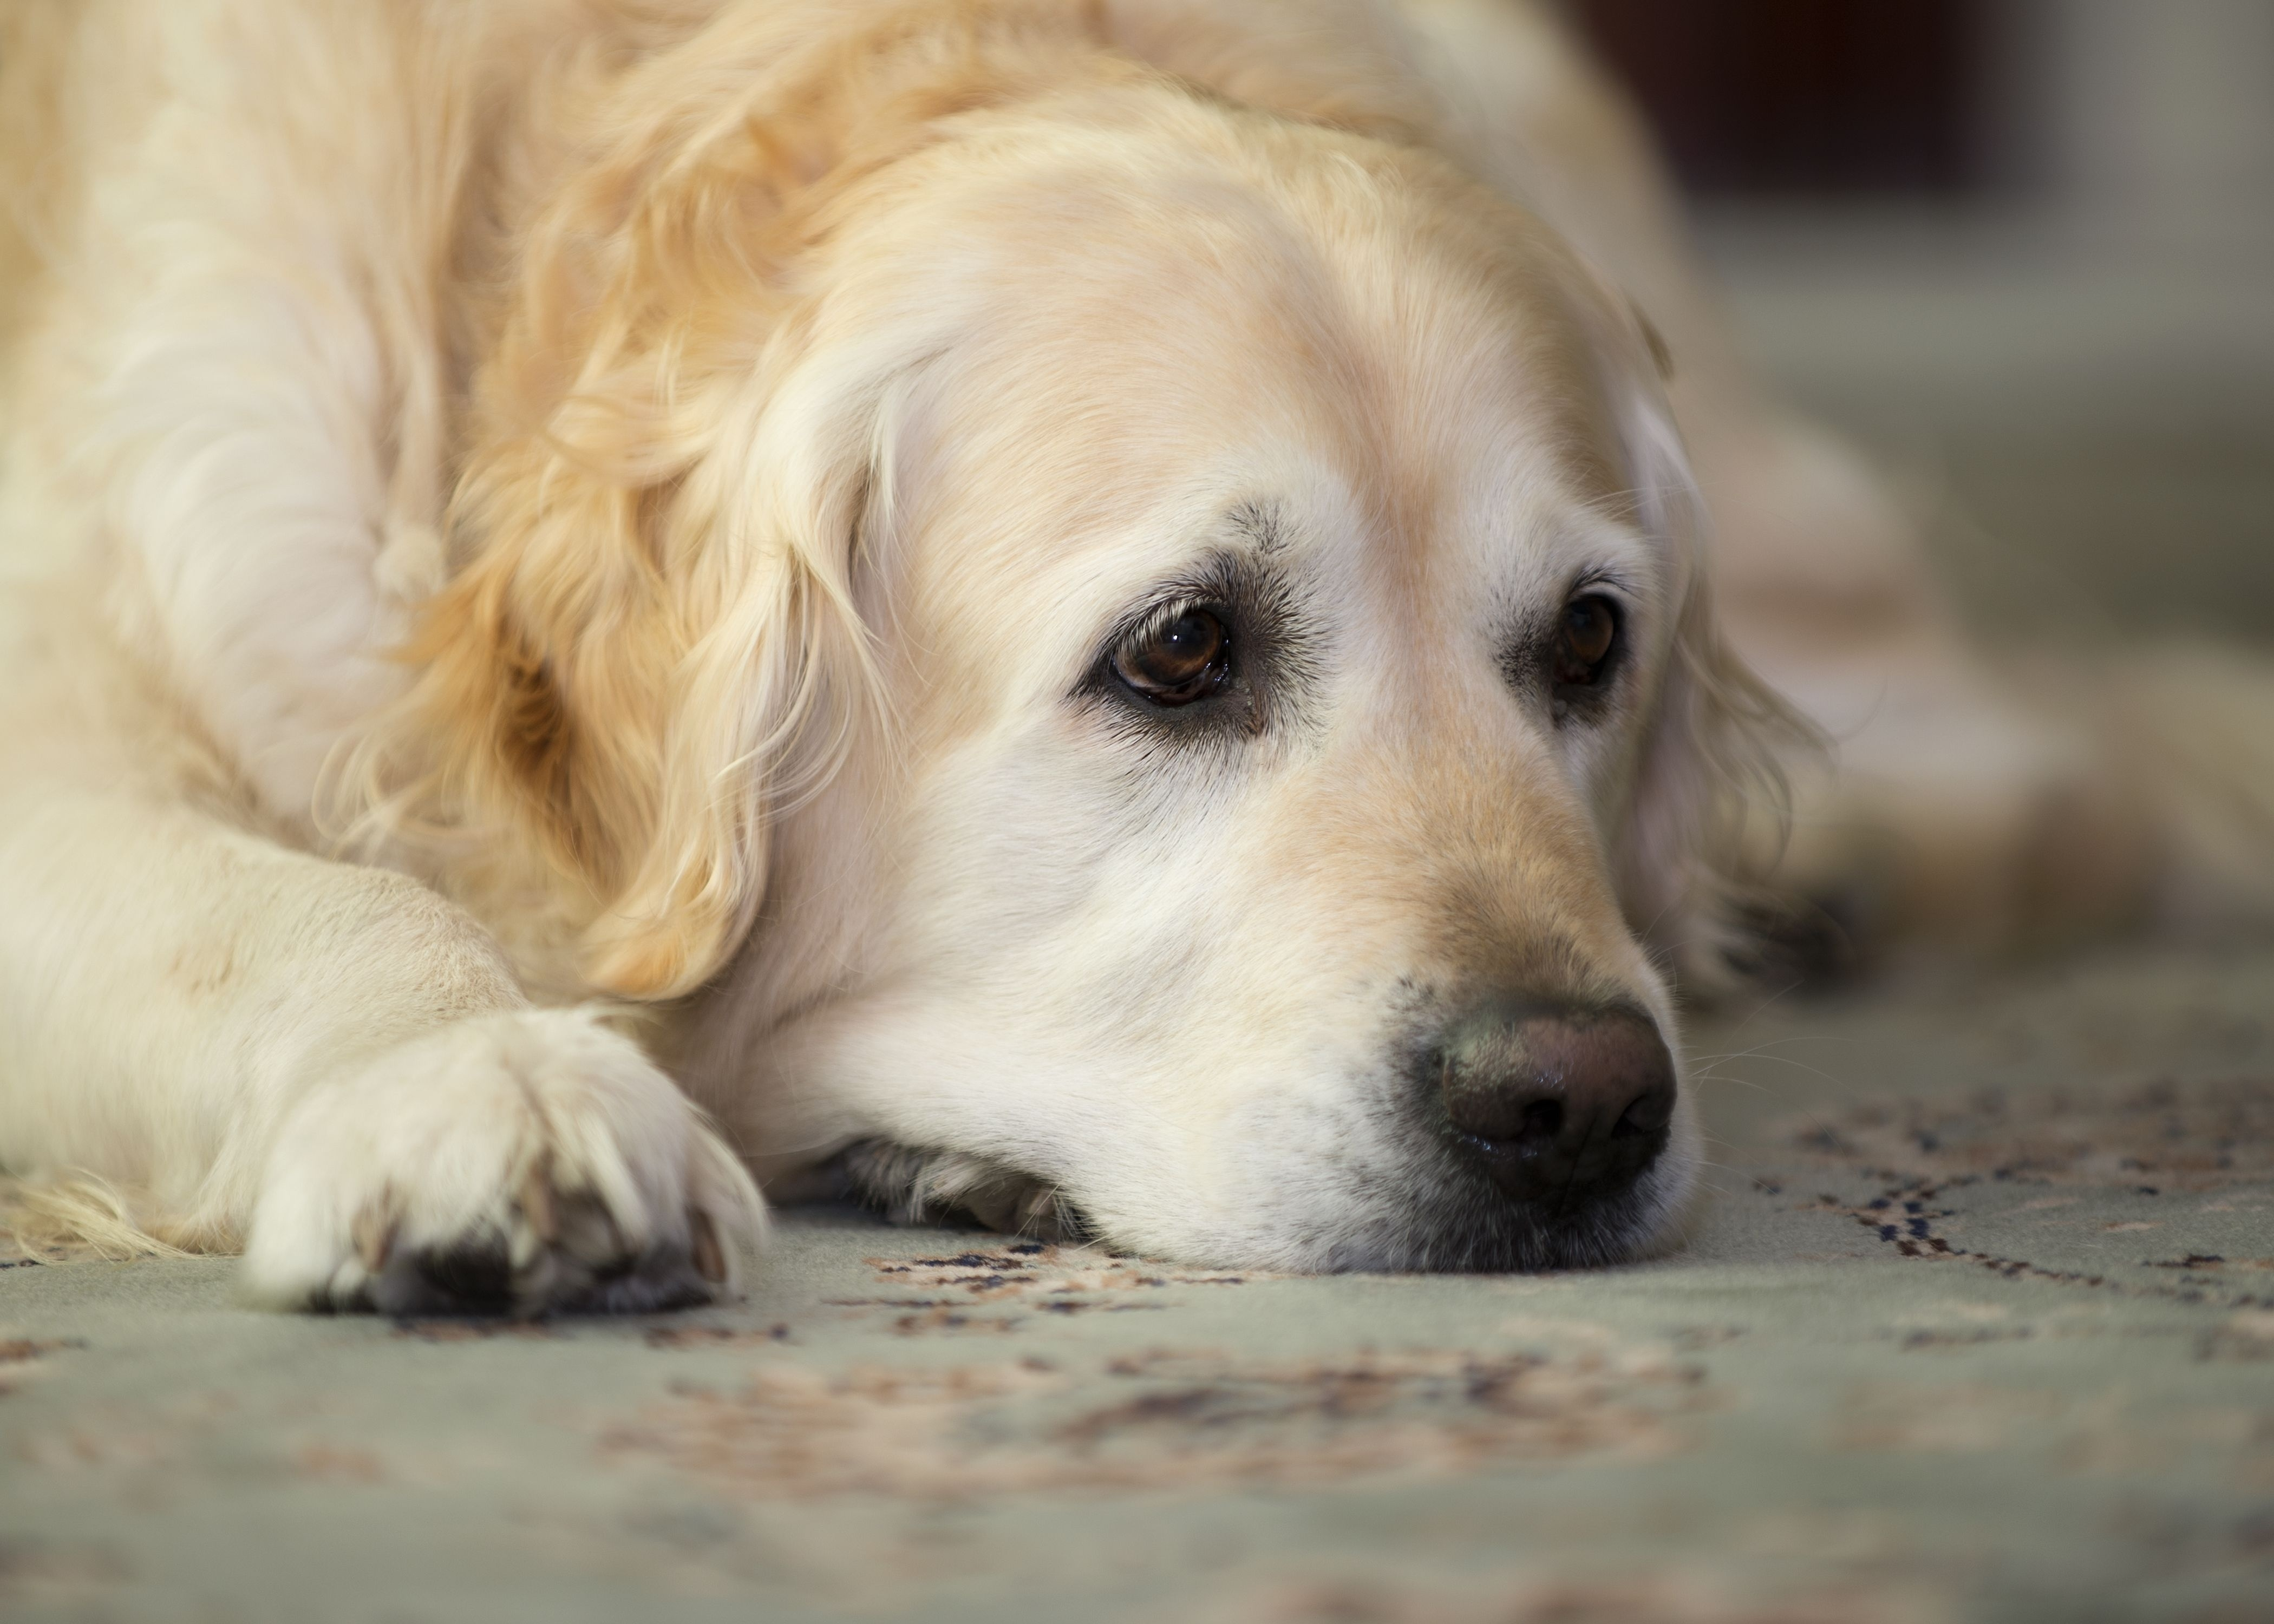 56786 download wallpaper Animals, Golden Retriever, Dog, Muzzle, To Lie Down, Lie, Sadness, Sorrow, Nice, Sweetheart screensavers and pictures for free